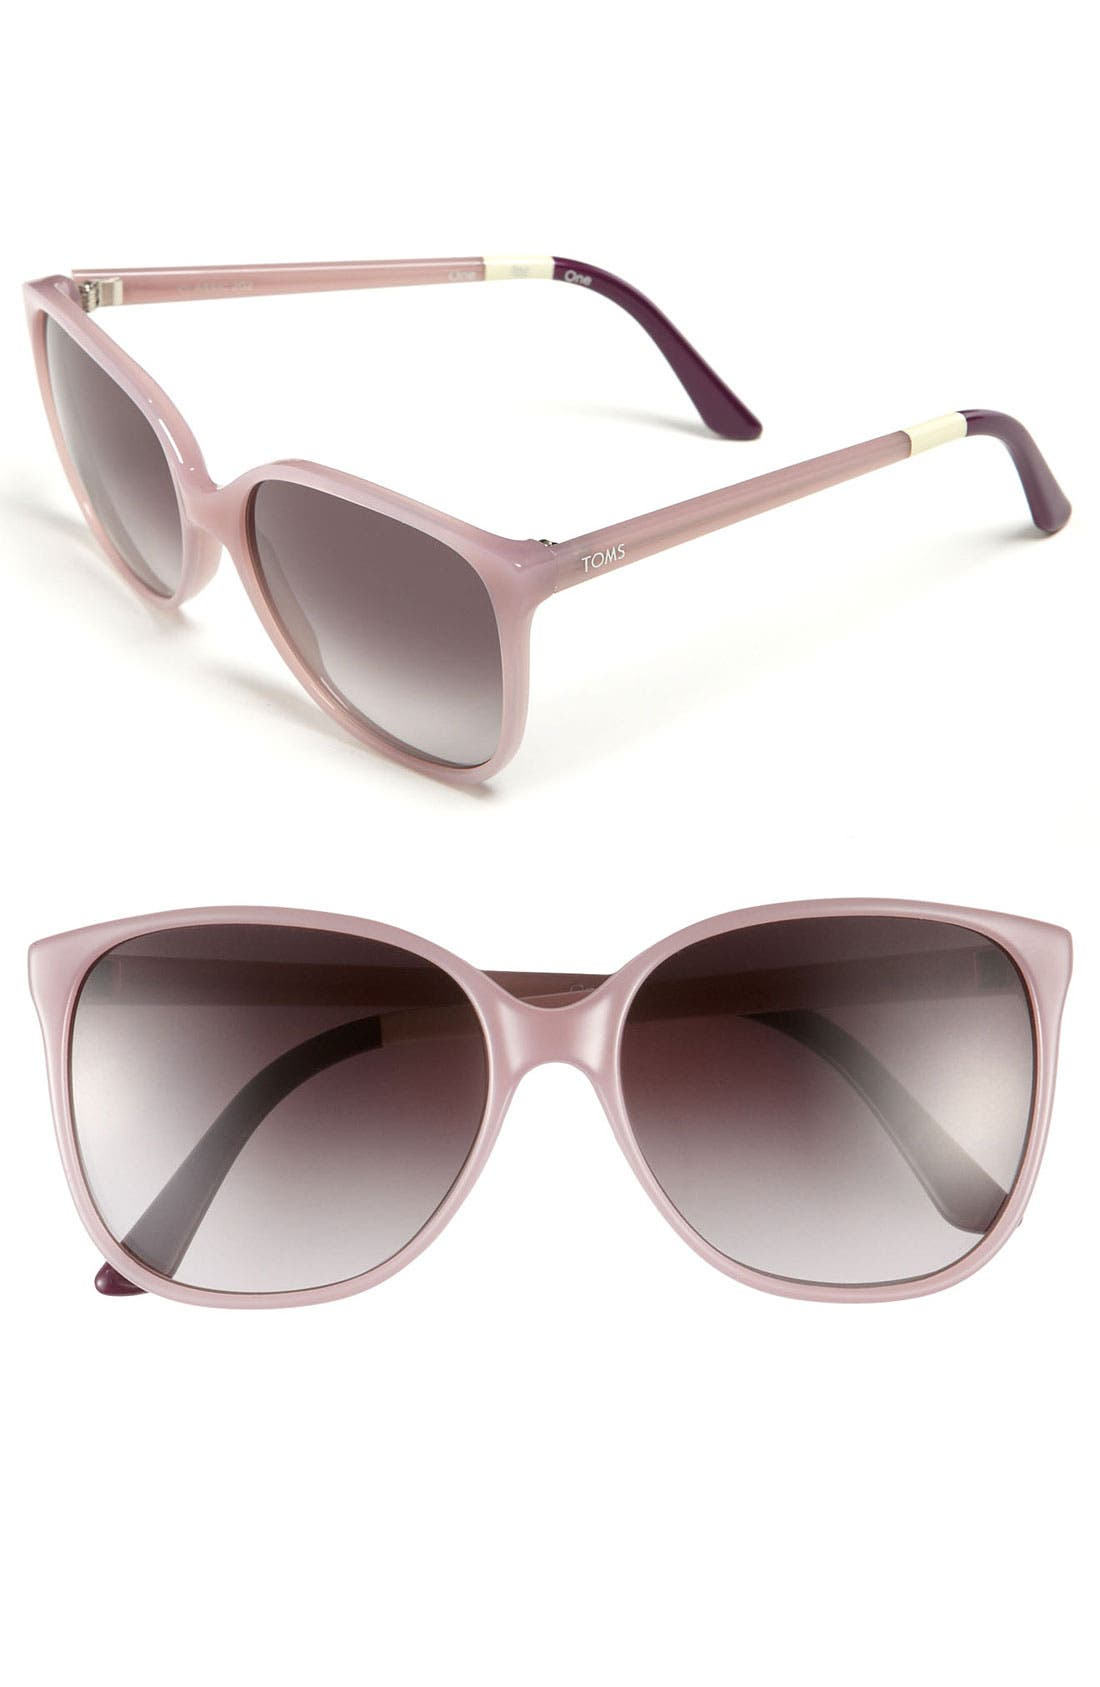 Alternate Image 1 Selected - TOMS 'Sandela' 57mm Sunglasses